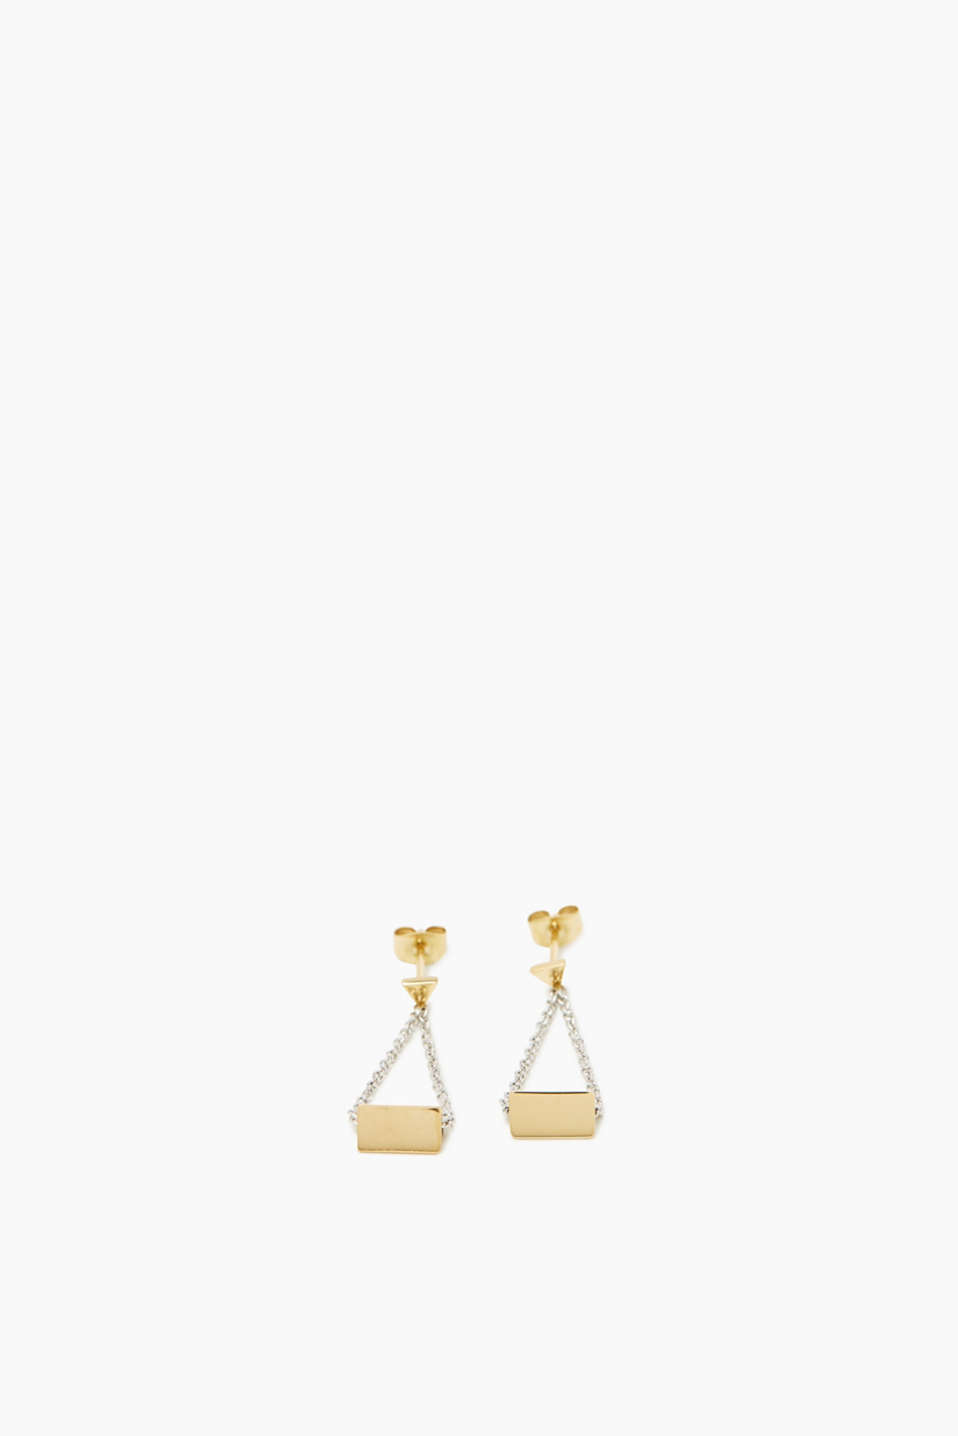 The graphic design and recurring triangles make this pair of stud earrings a favourite.